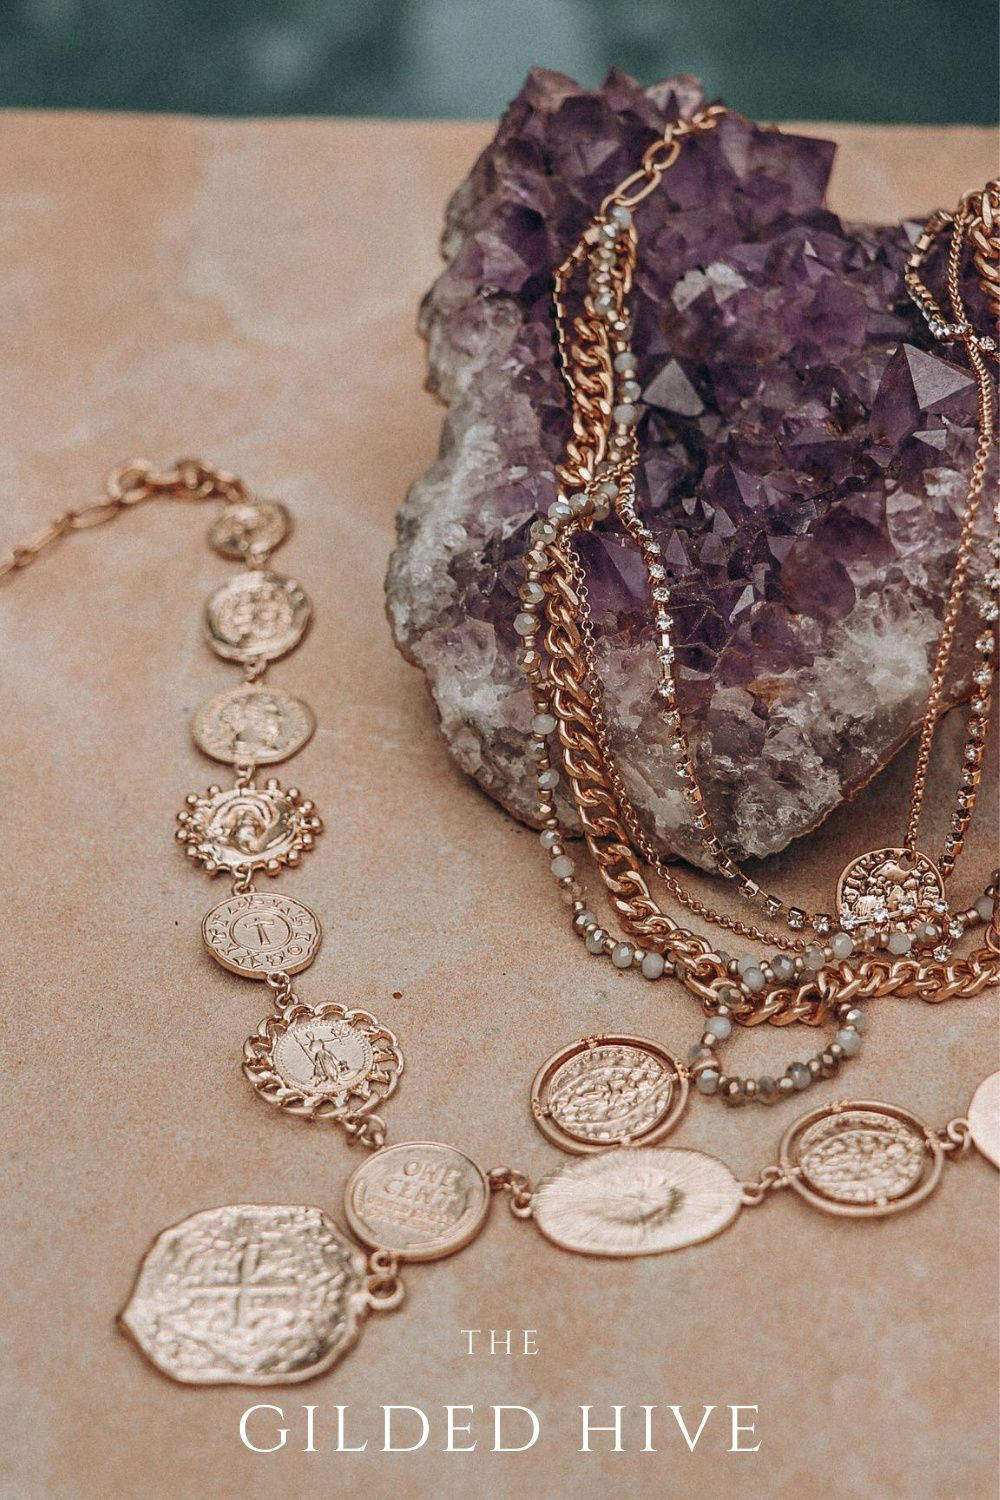 #bohotrends #bohojewelry #statementjewelry #fallfashion #fall #accessories #goldchain #goldcoinnecklaces